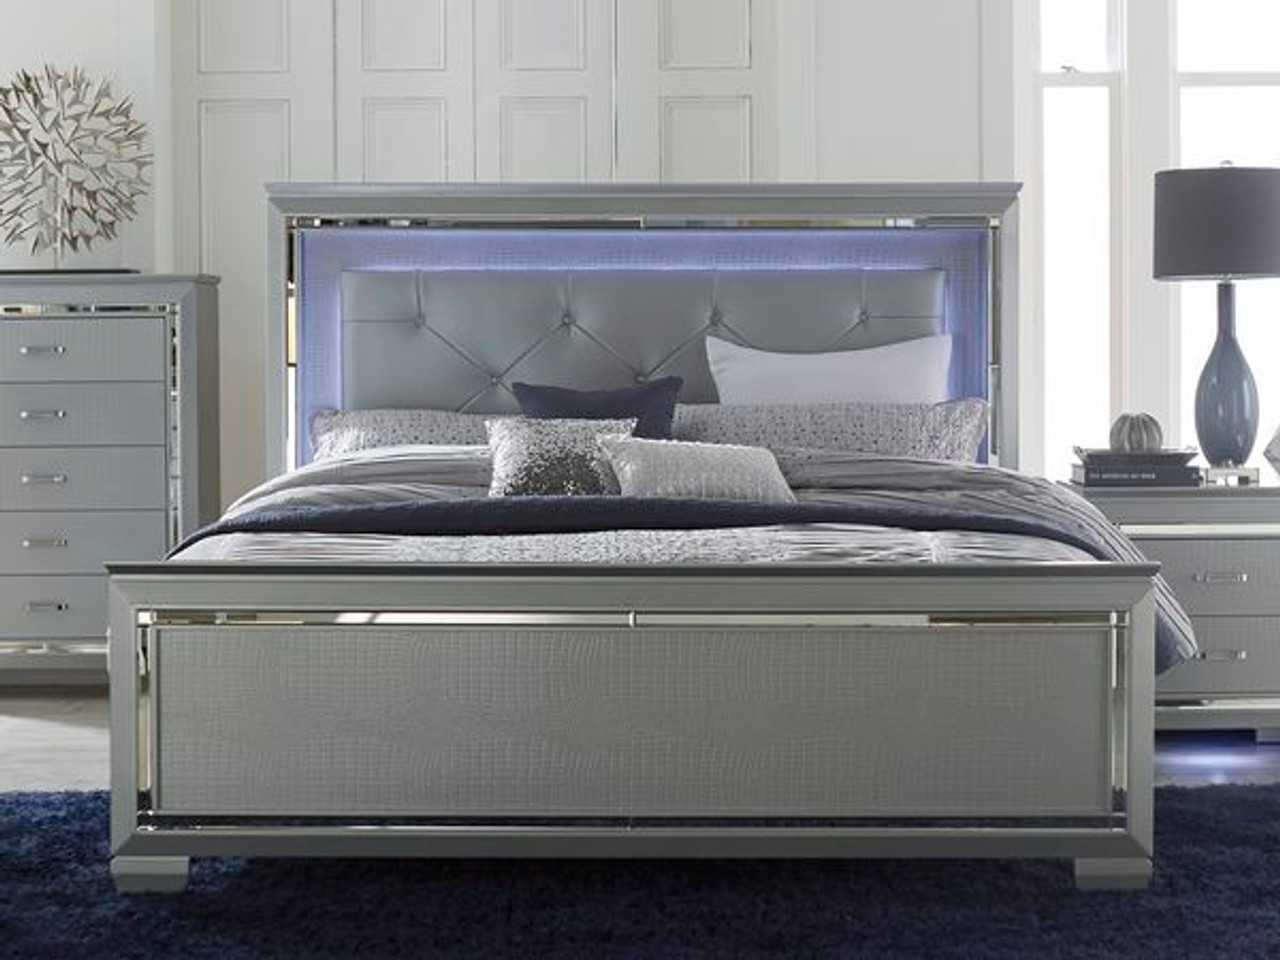 Homelegance Allura Modern Bed Silver With Touch Engaged Led Lighting